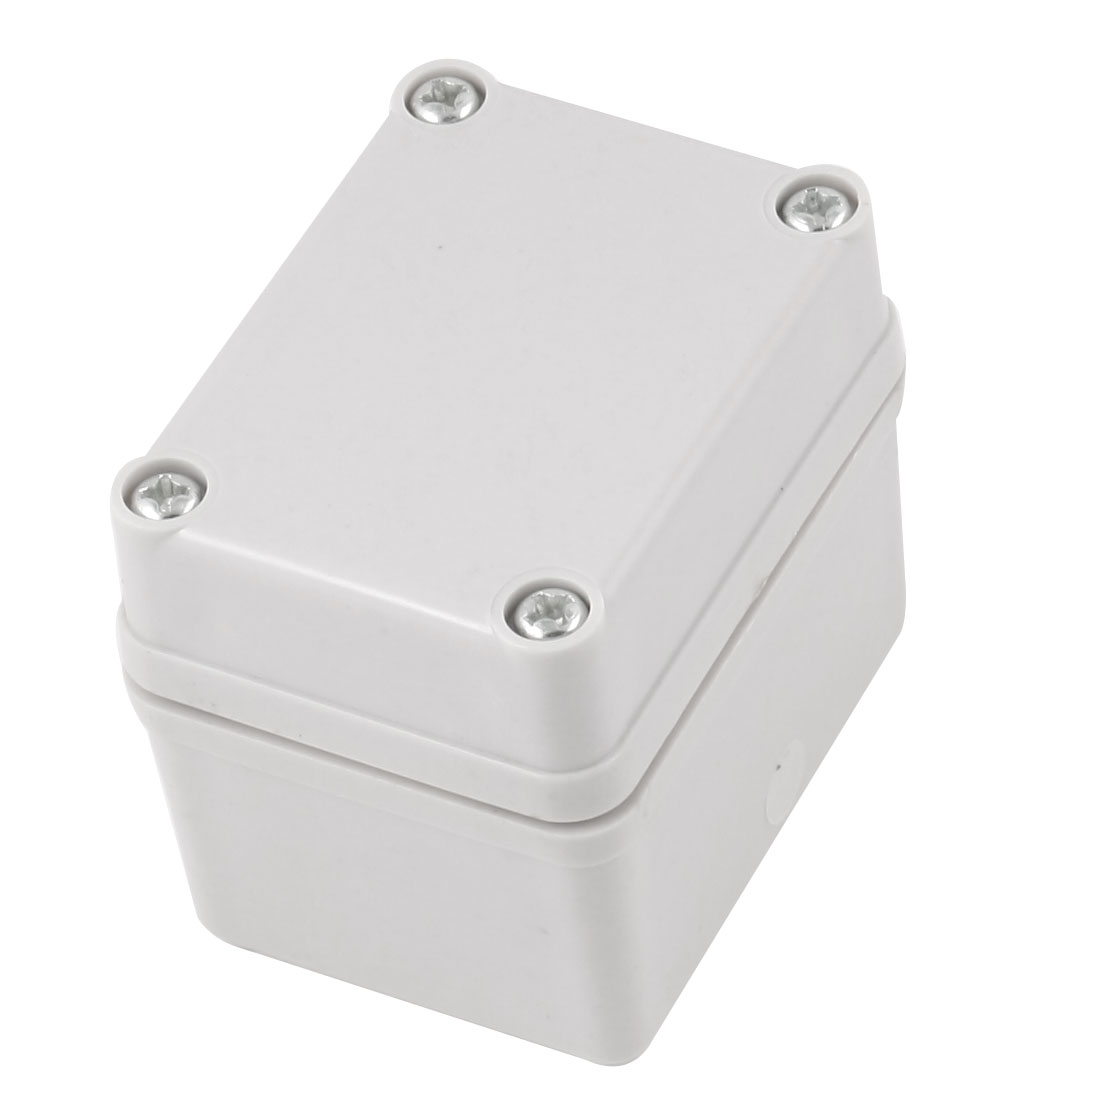 65mm x 50mm x 55mm Dustproof IP65 Plastic DIY Cable Connect Electric Junction Enclose Box Power Protector Case